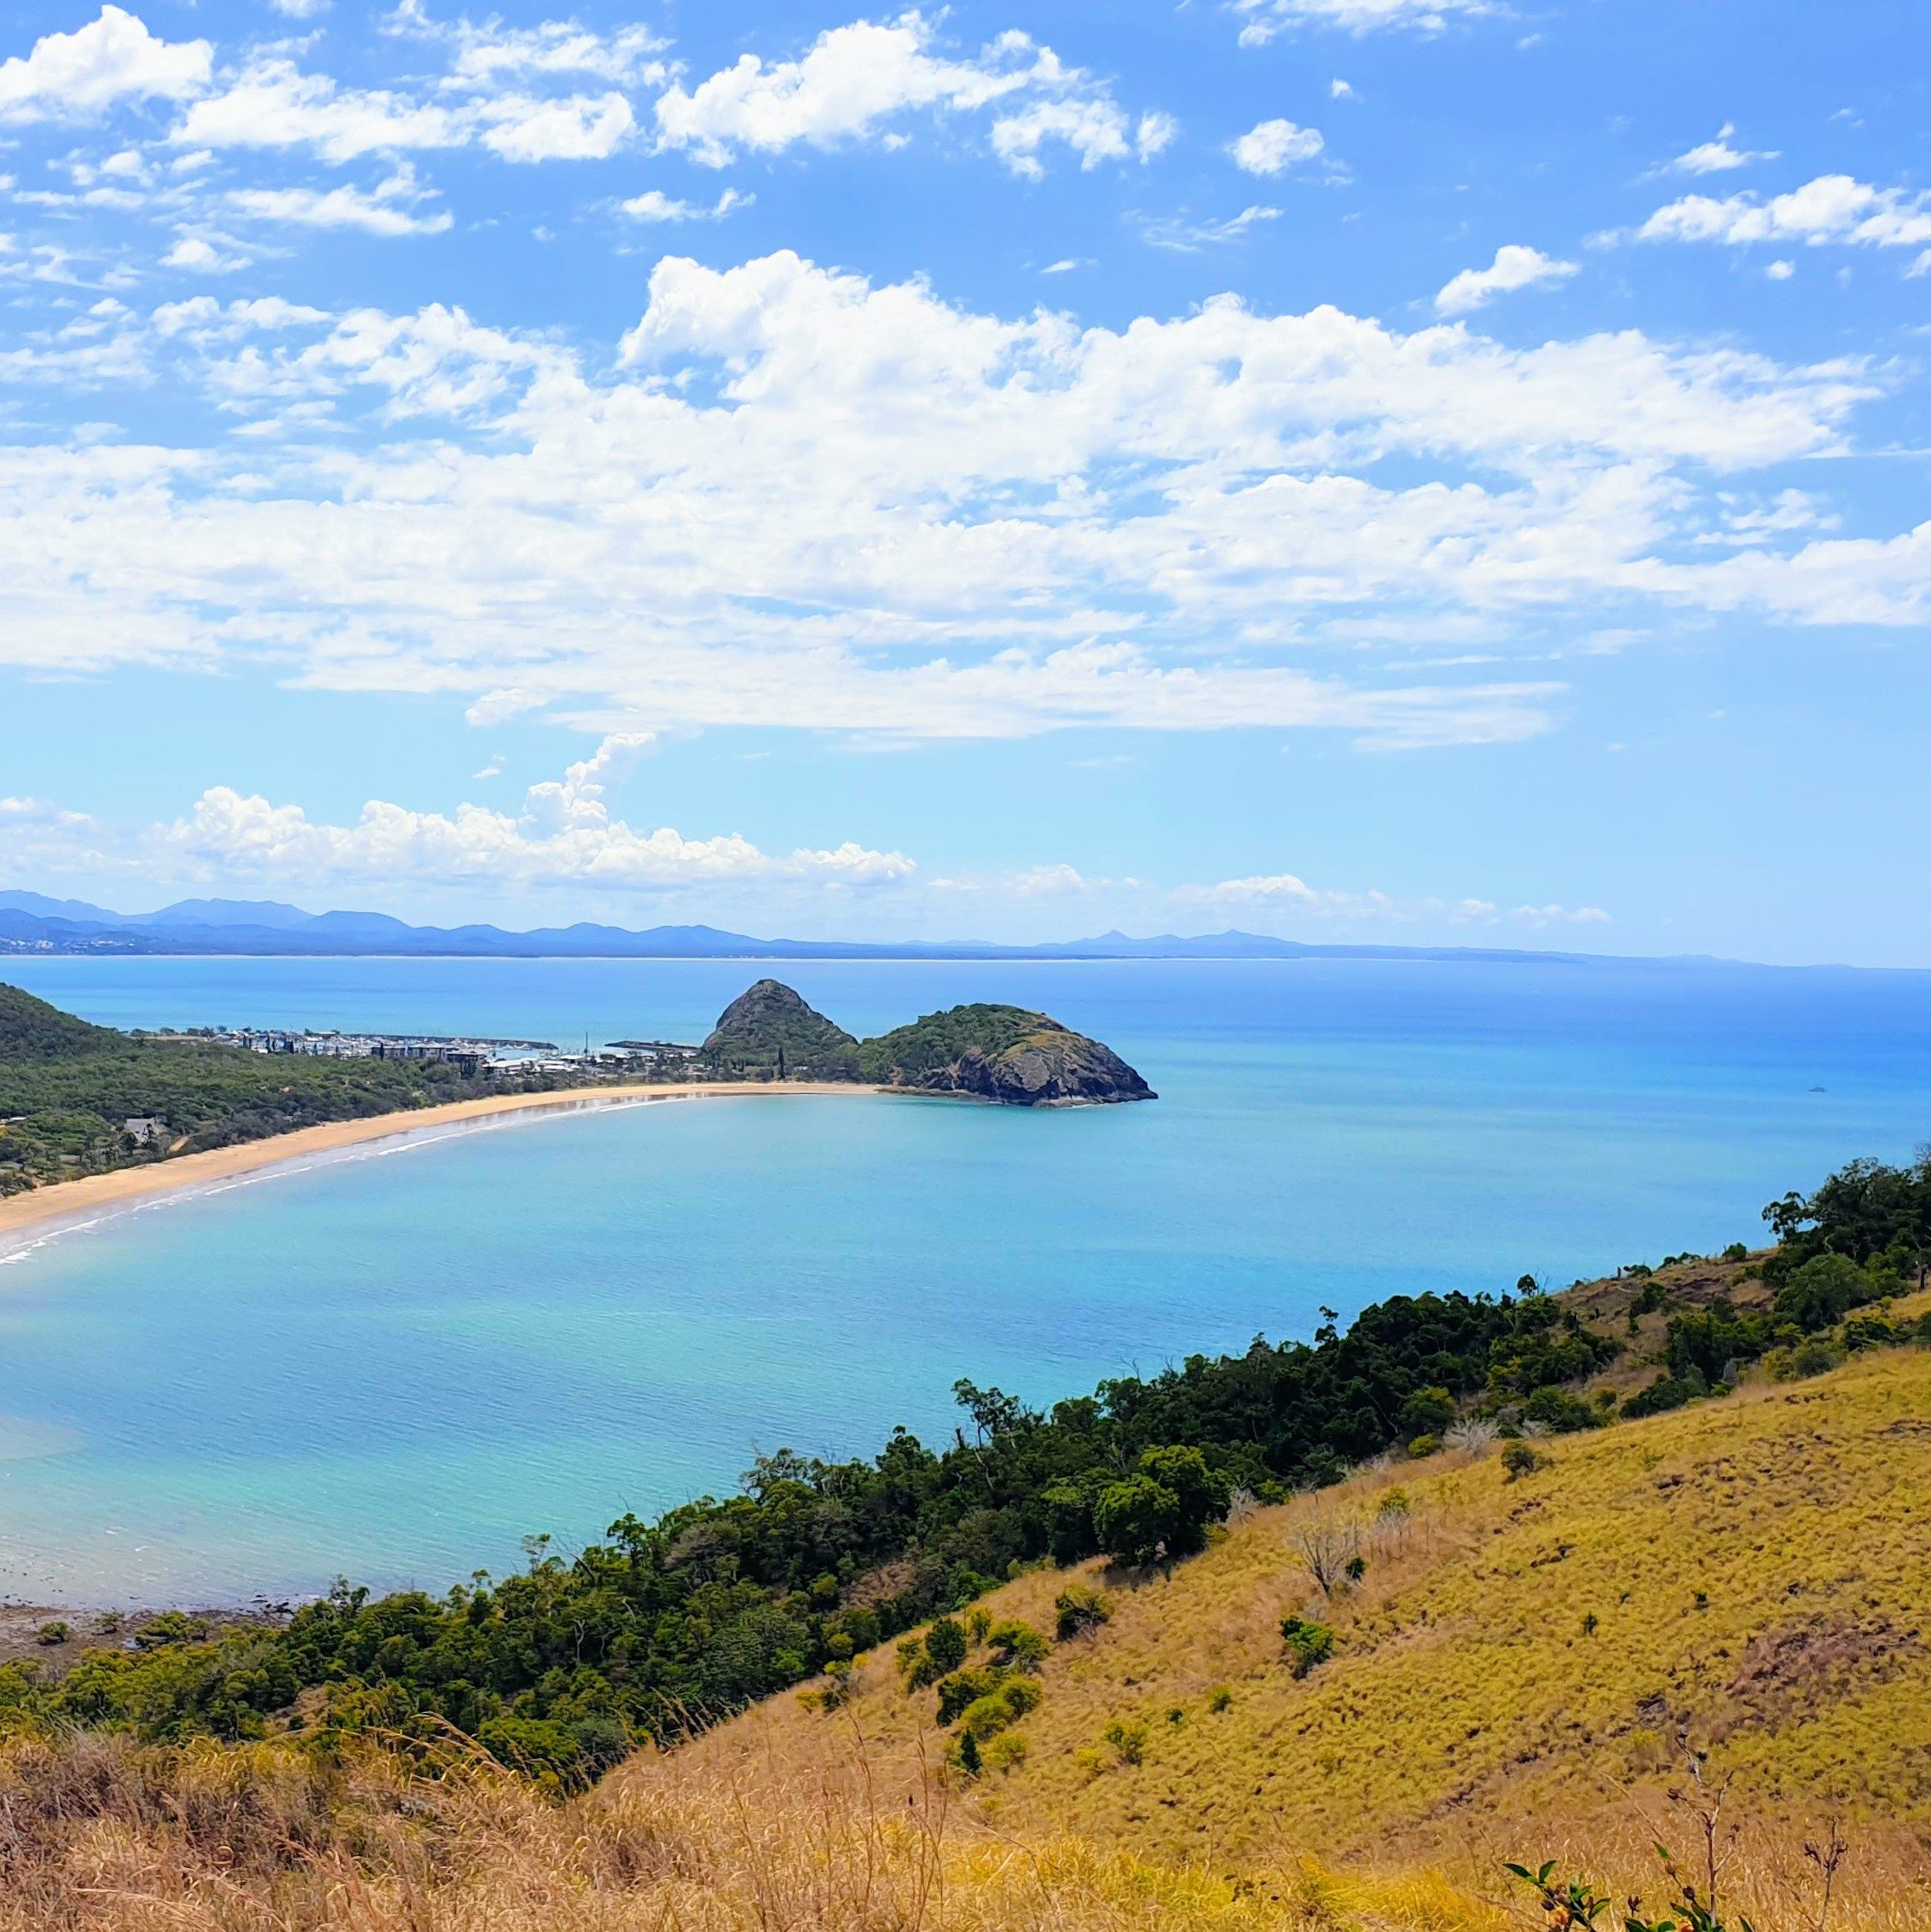 https://www.sailinn.com.au/wp-content/uploads/2019/12/kemp-hill-bluff-point-yeppoon-beach.jpg